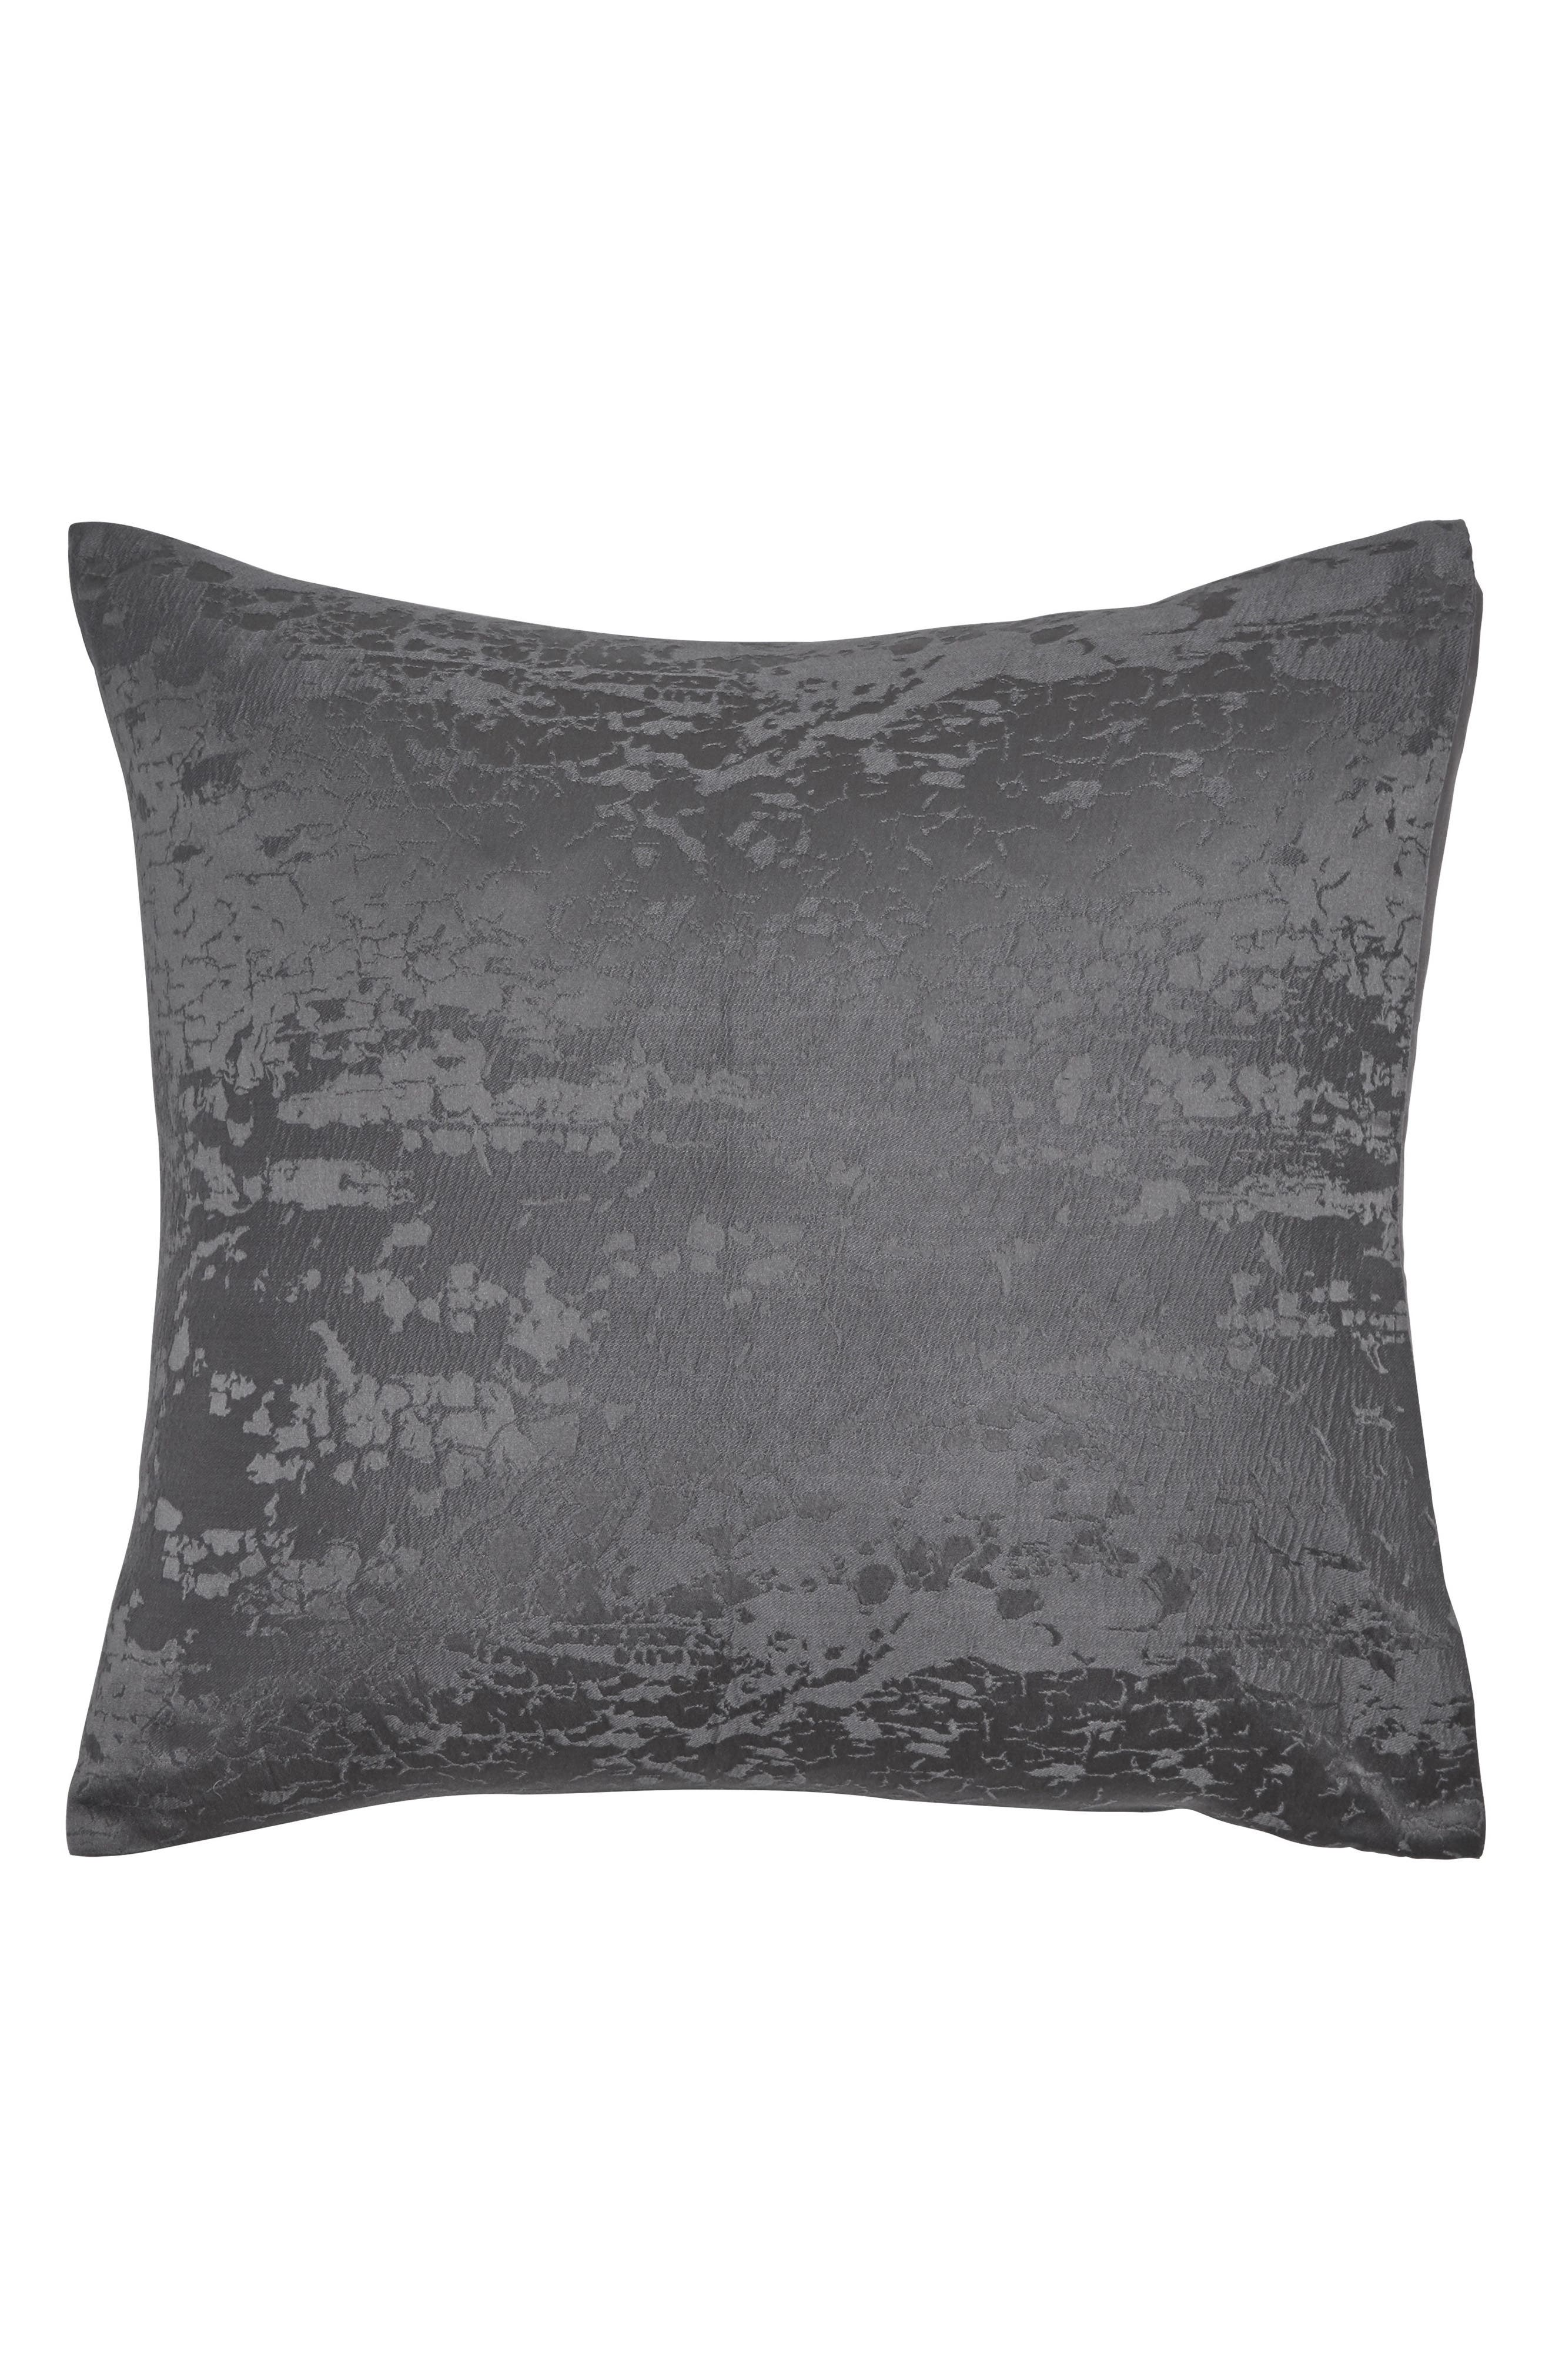 DONNA KARAN NEW YORK, Donna Karan Moonscape Euro Sham, Main thumbnail 1, color, CHARCOAL